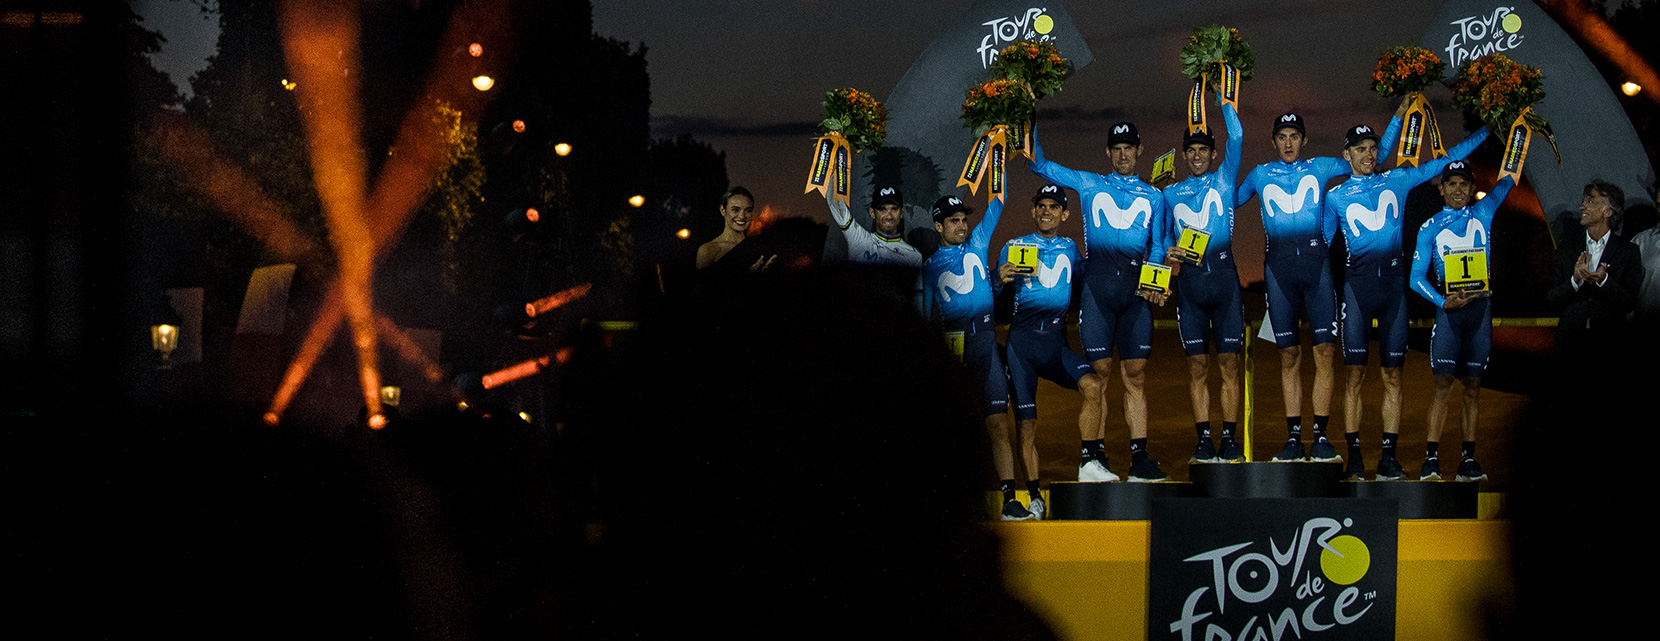 Movistar Team TDF